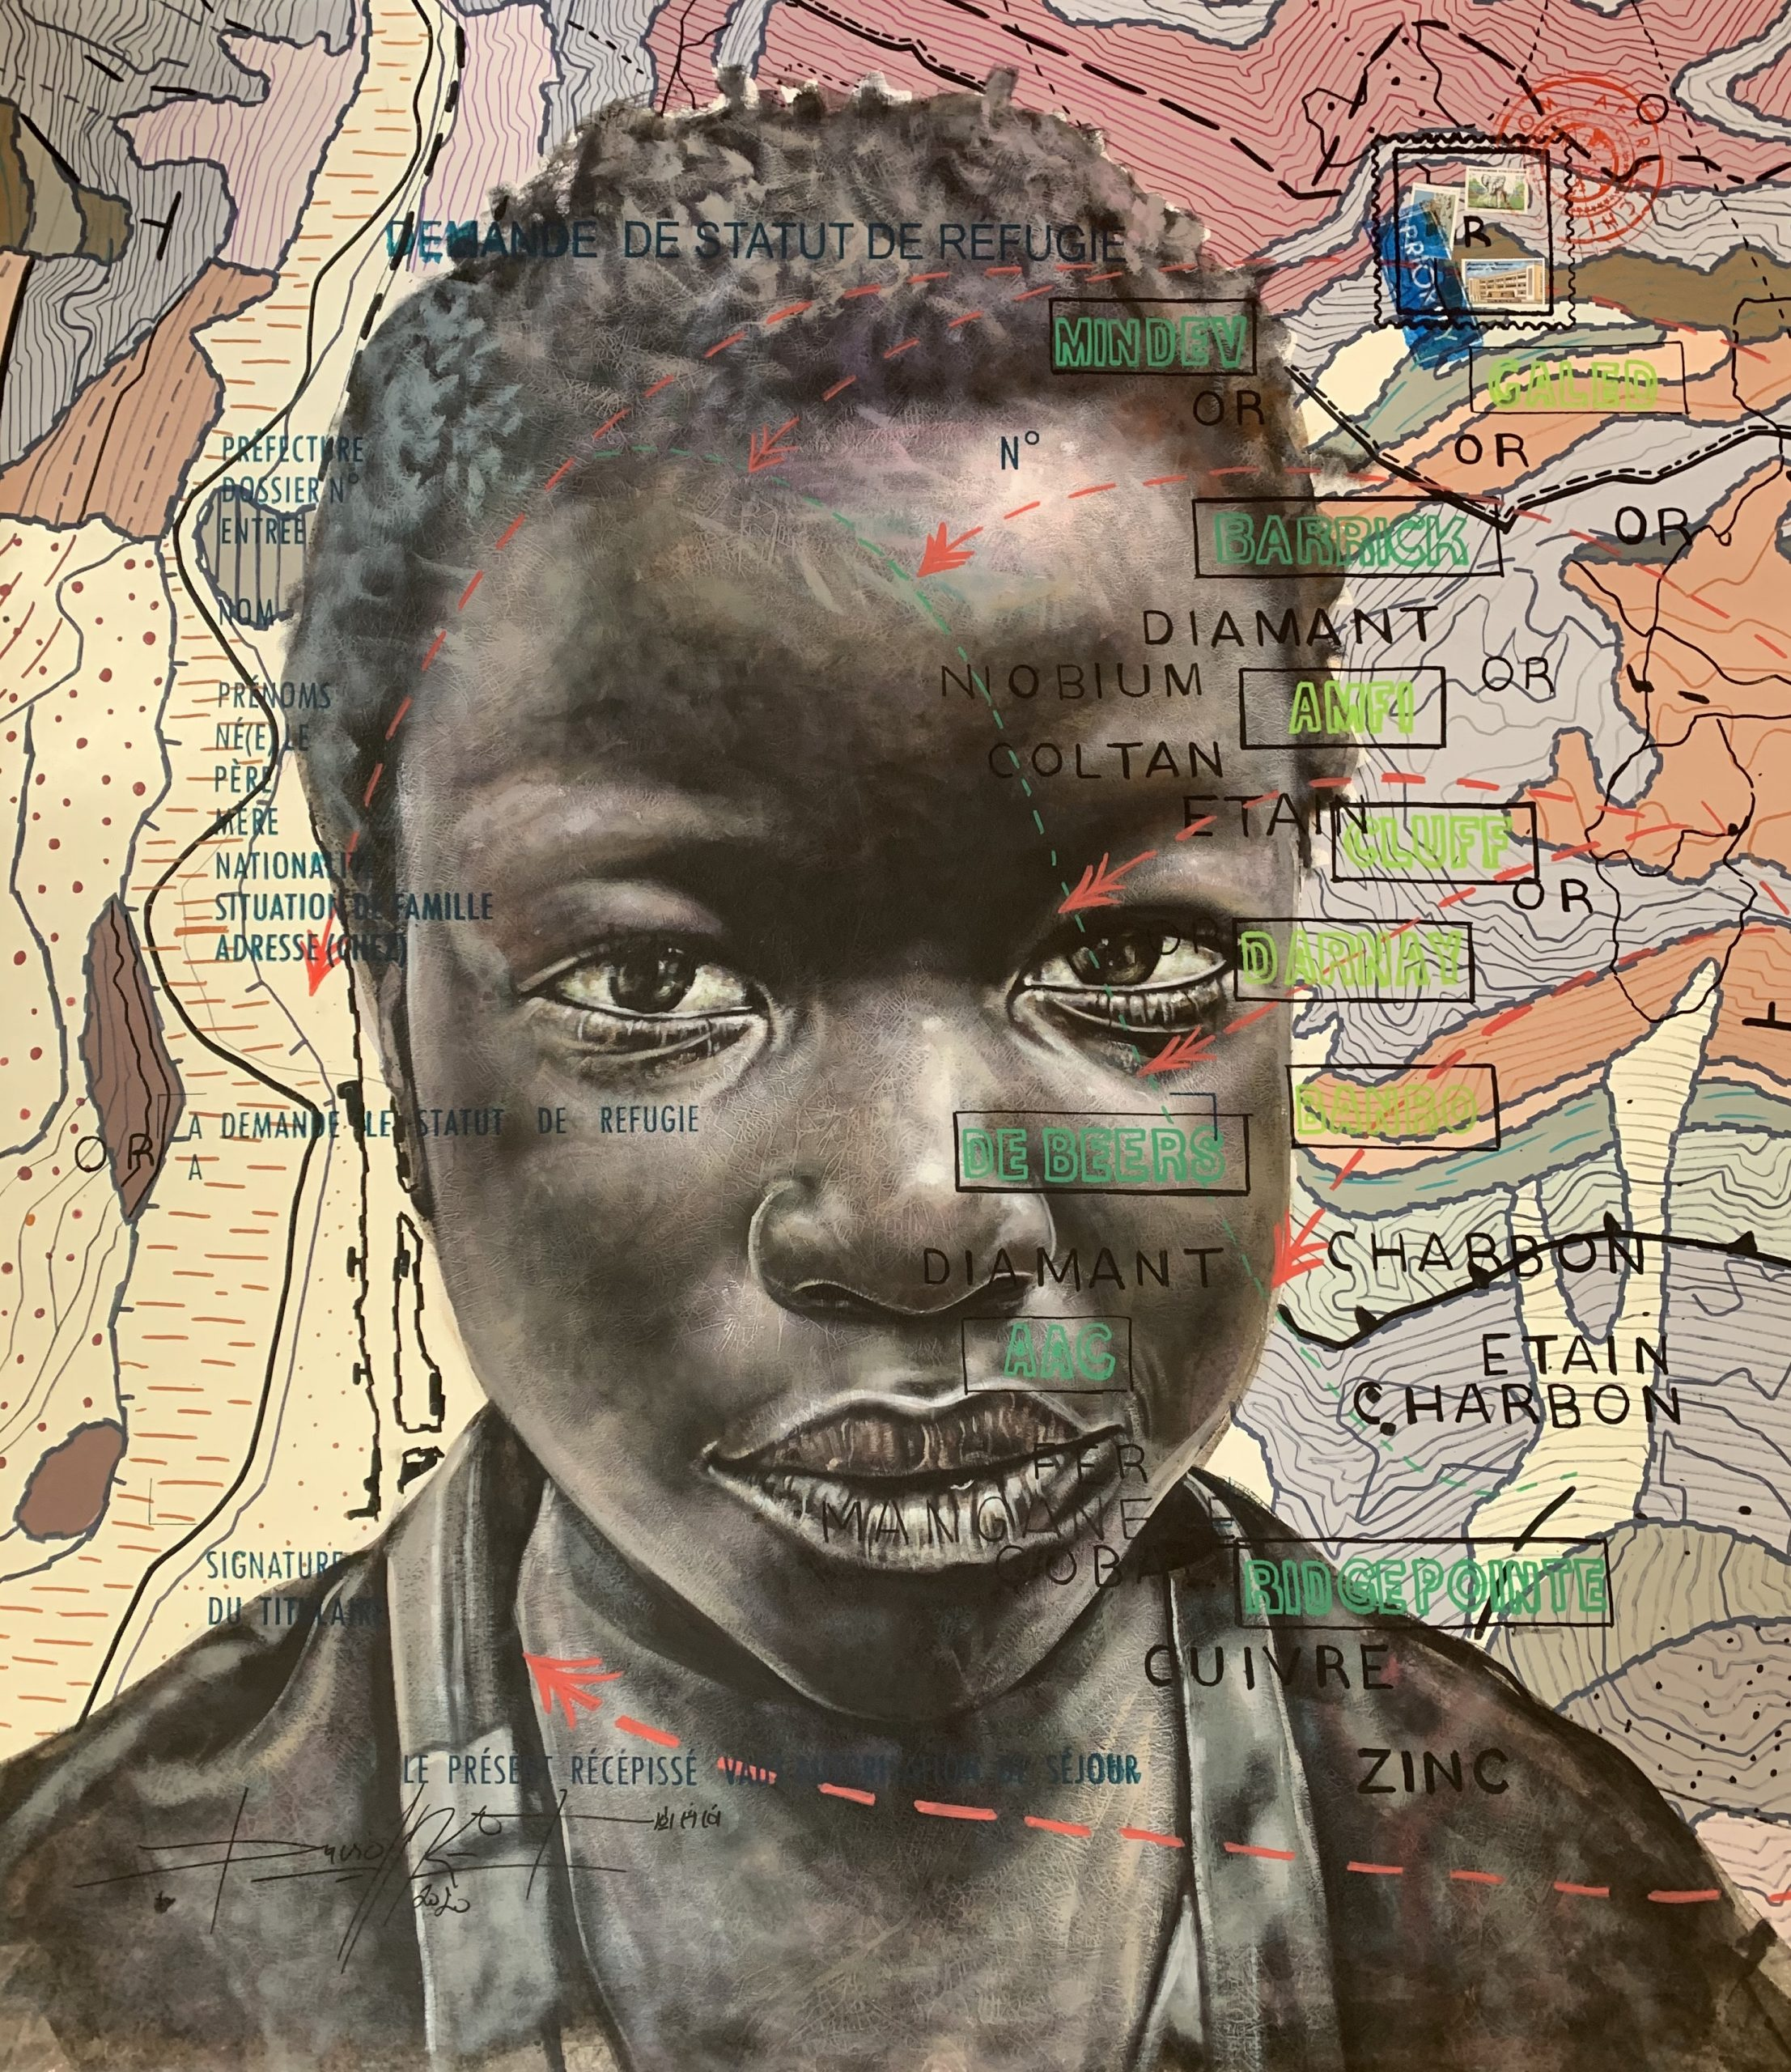 Jean David Nkot, 'BP. Child of Calabar' 2020, acrylic, Indian ink and posca on canvas. Courtesy of AFIKARIS Gallery